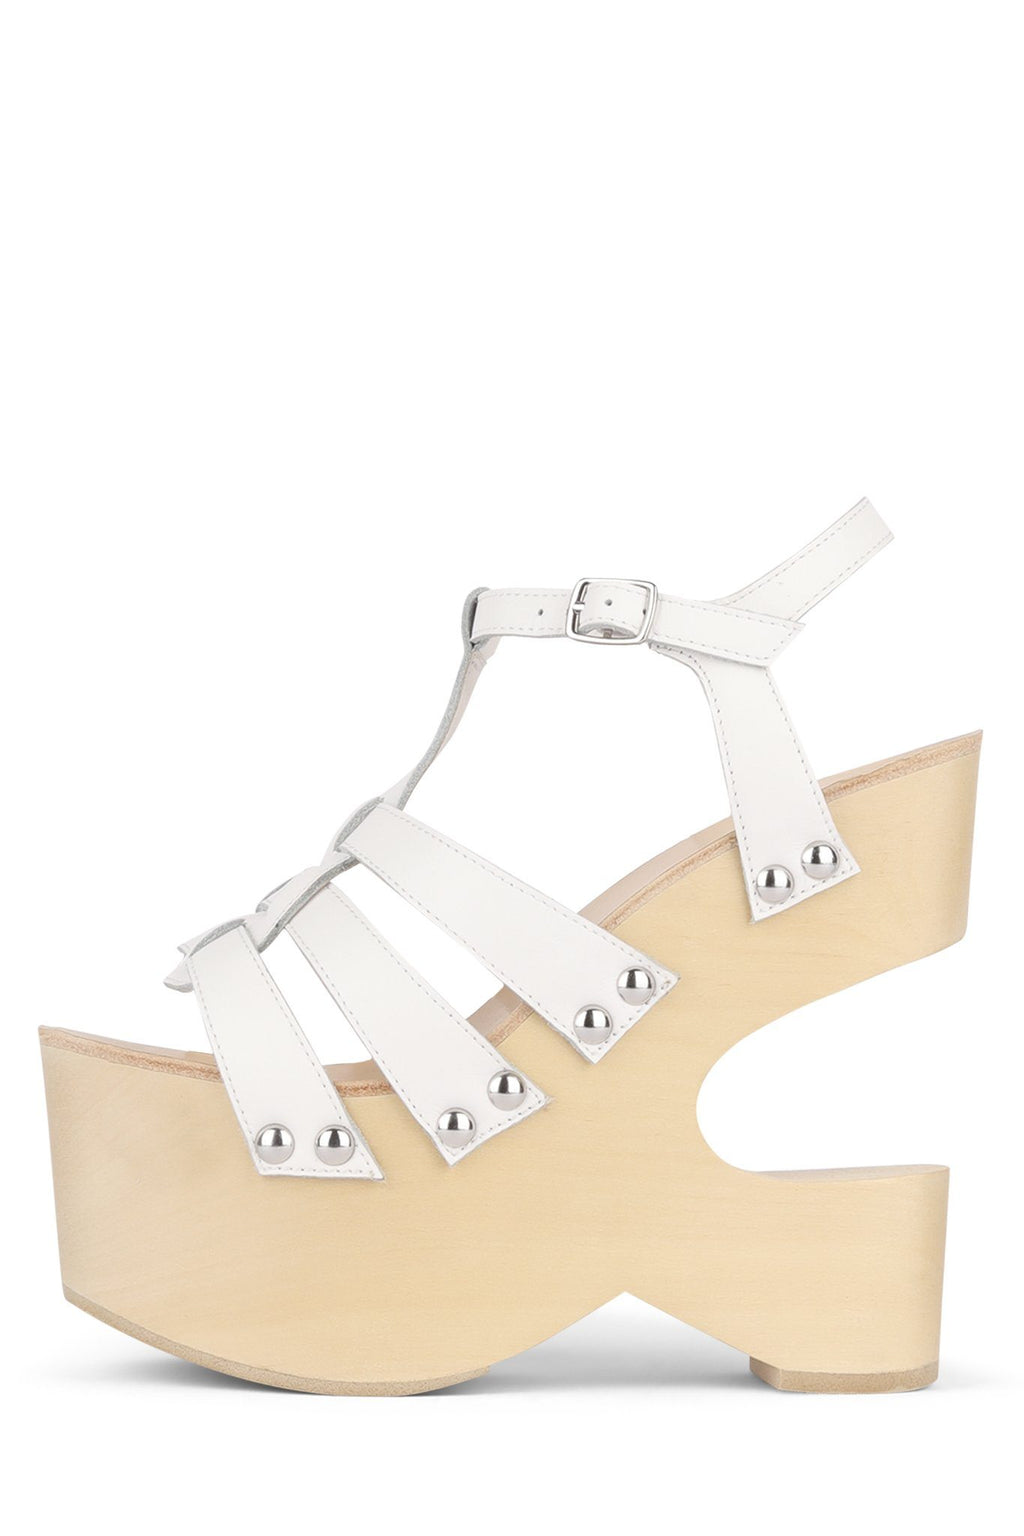 BOOGY-NITE Wedge Sandal HS White 6